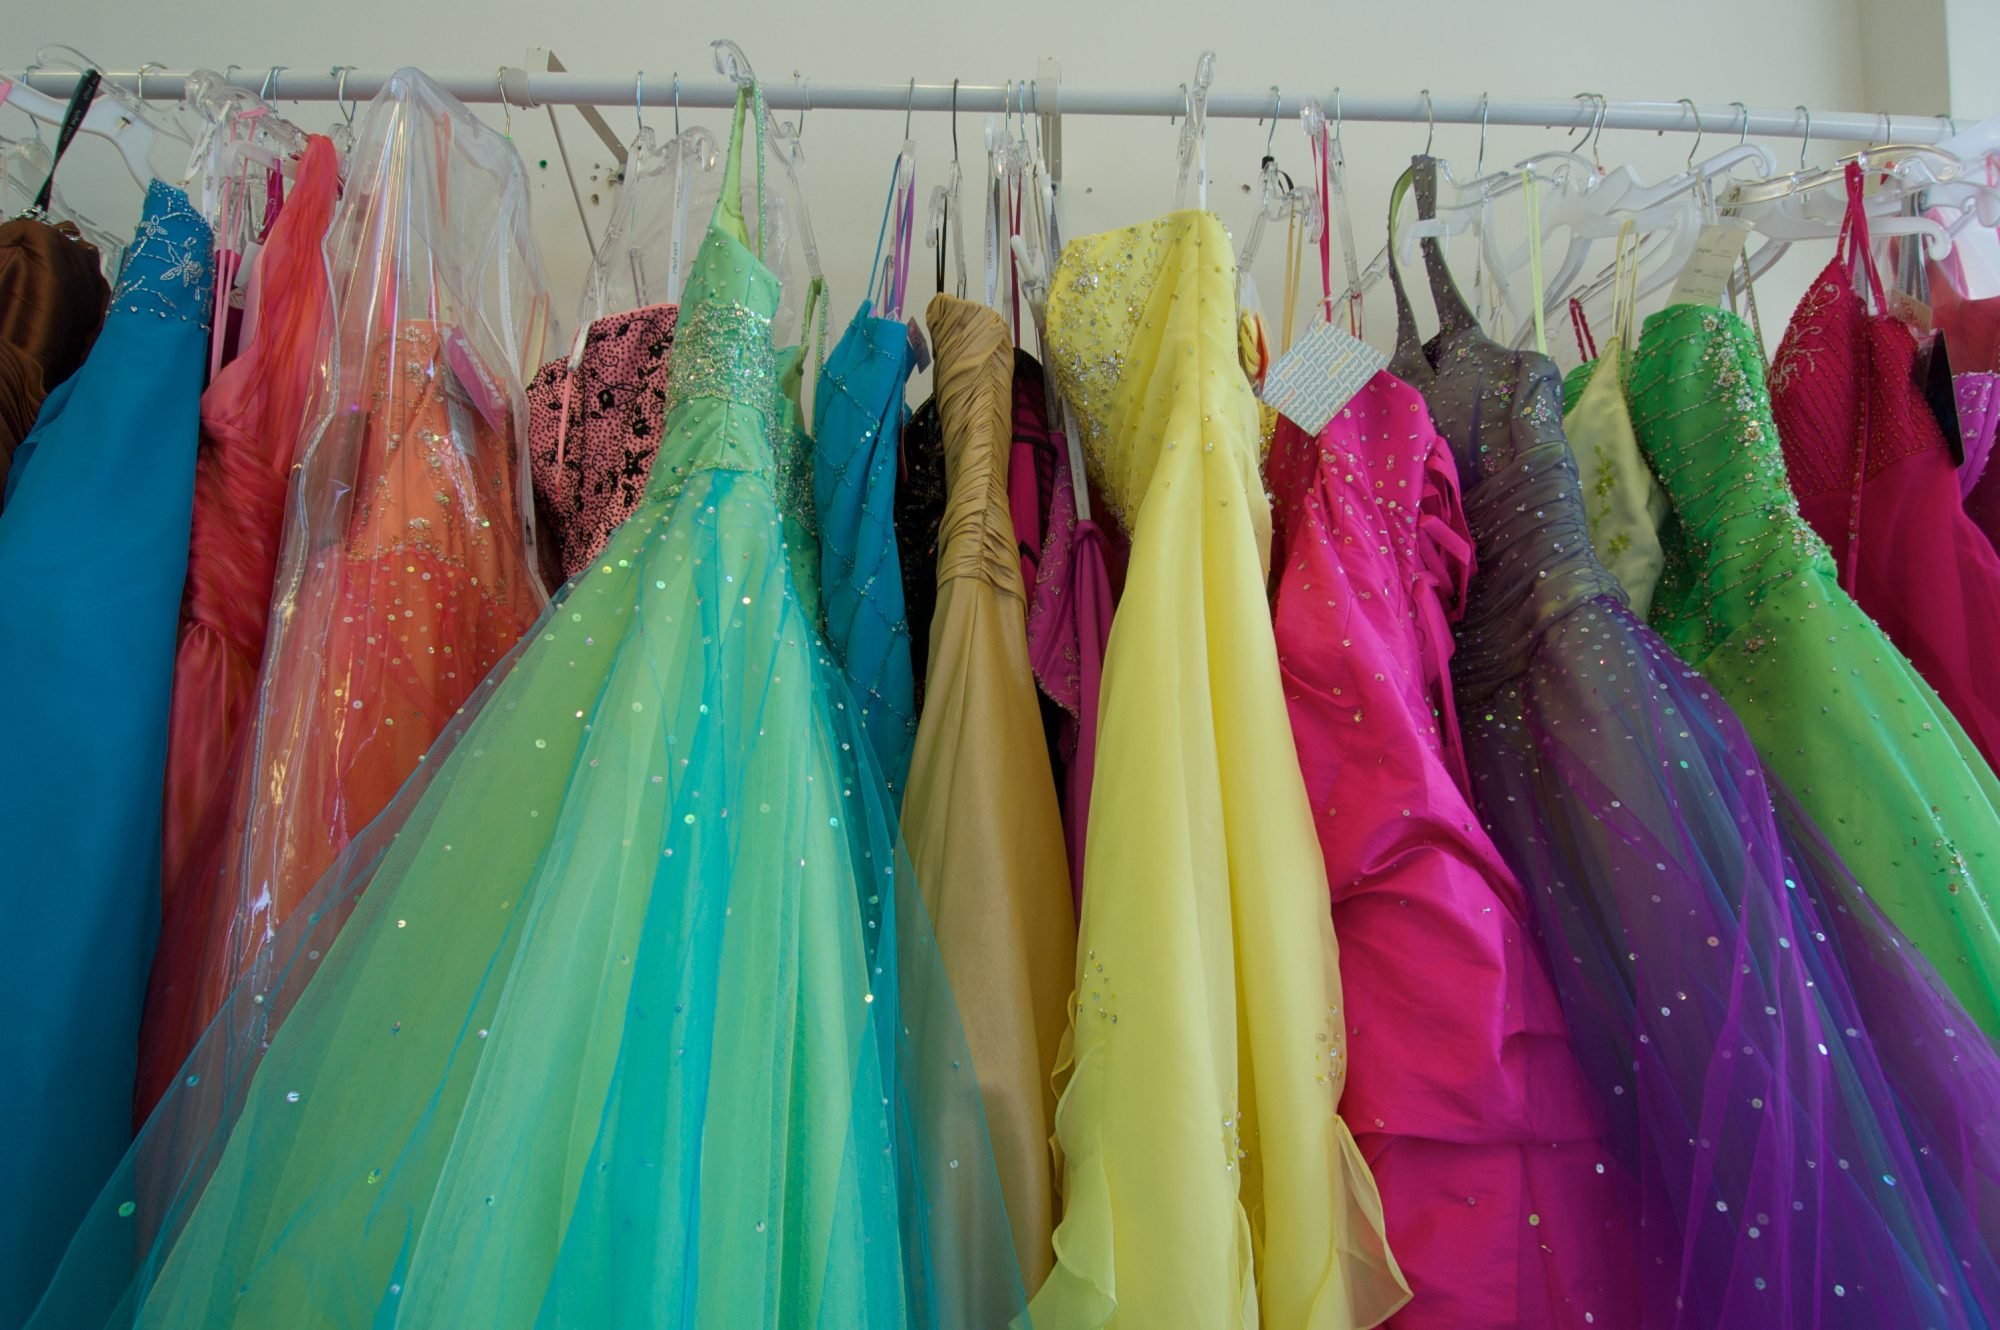 Colorful Prom Gowns Hanging on Rack